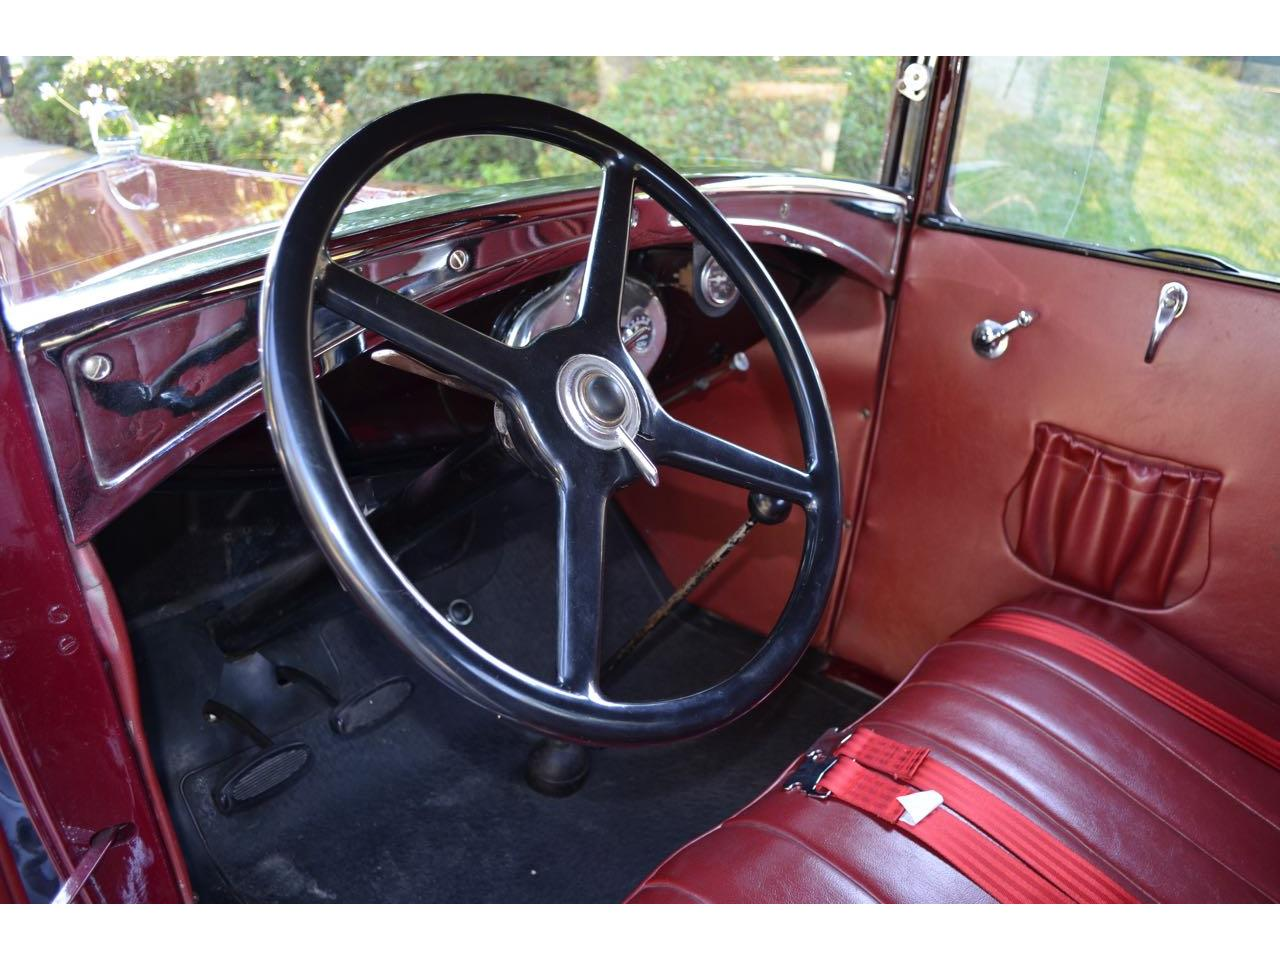 Large Picture of 1930 Ford Model A located in California - $13,500.00 - J2KT